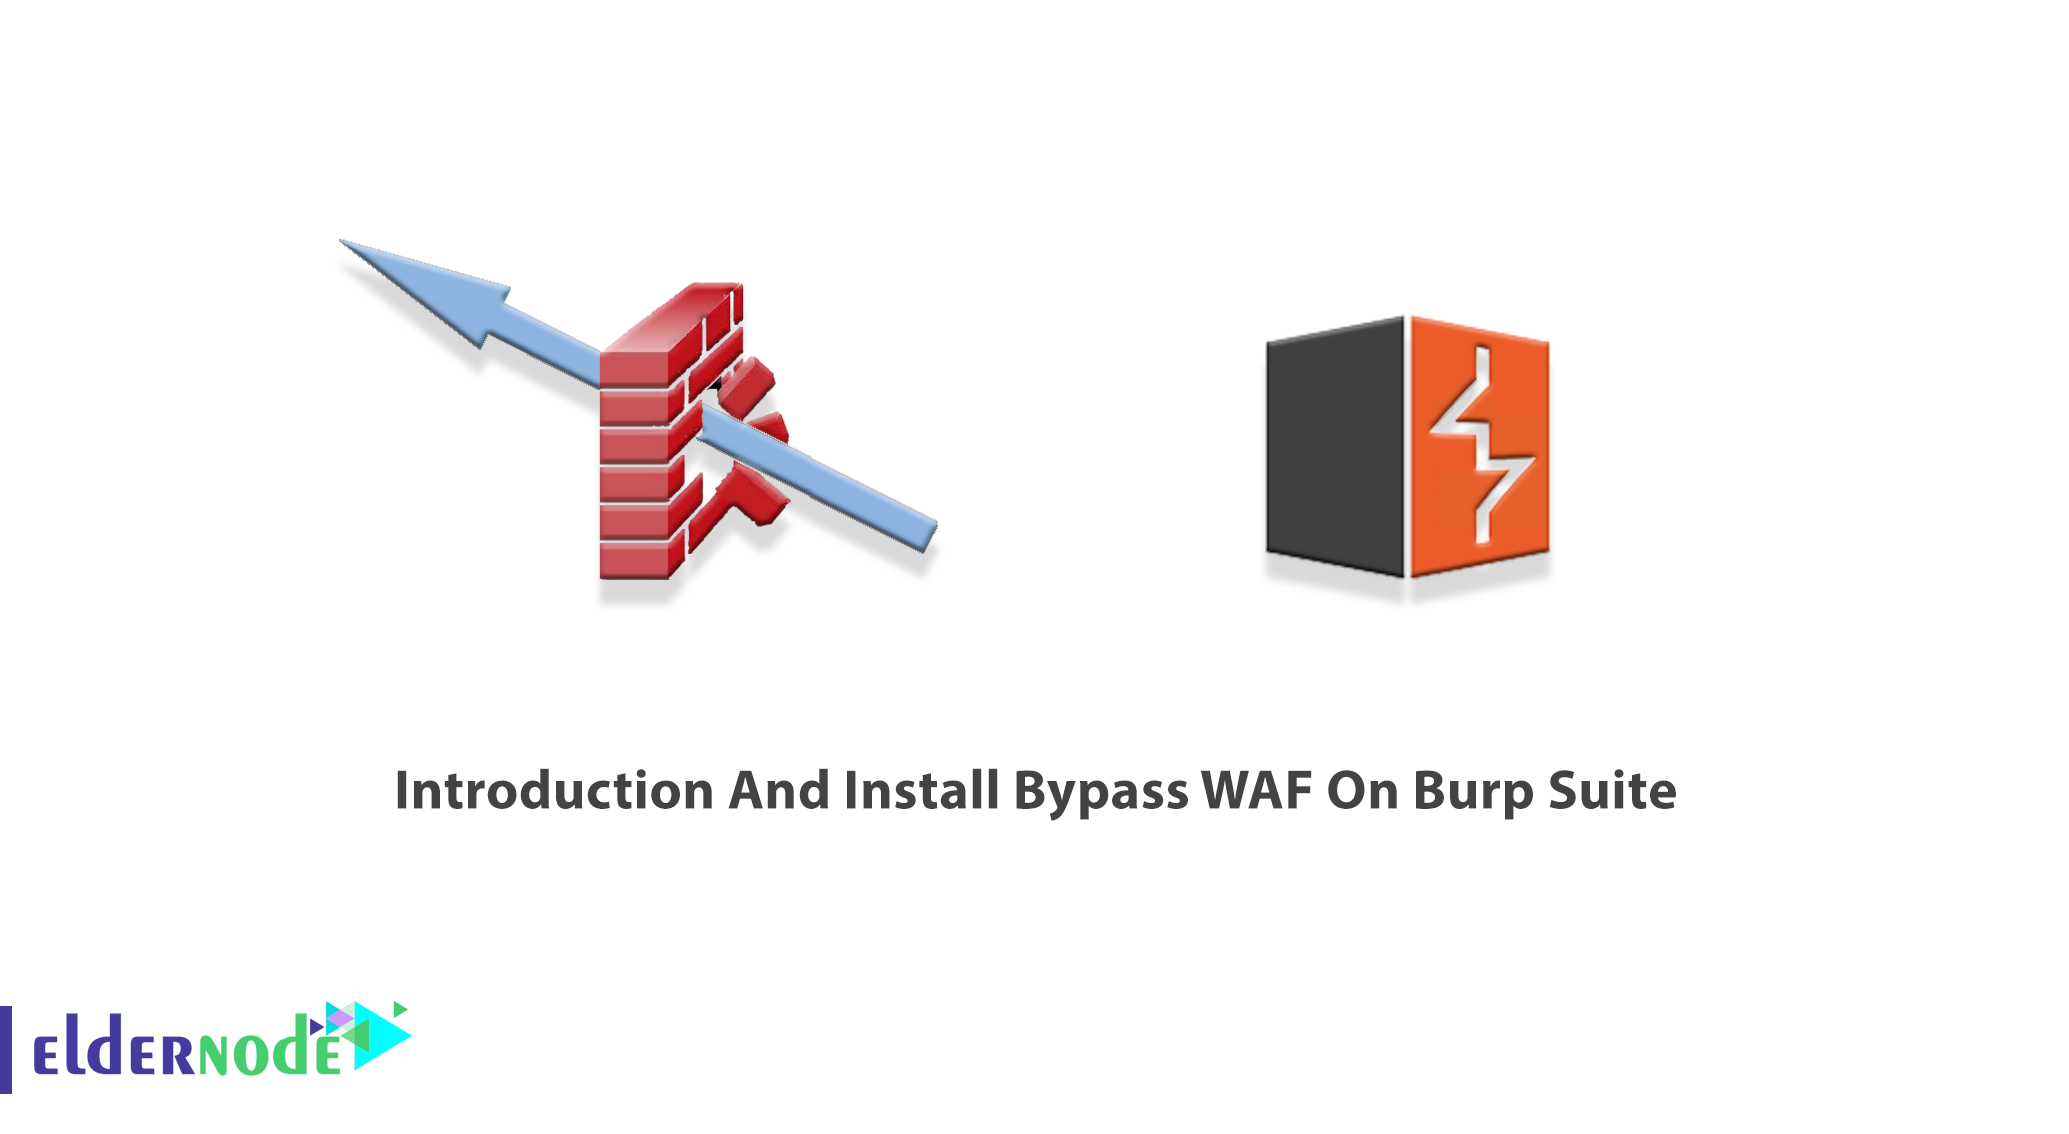 Introduction And Install Bypass WAF On Burp Suite